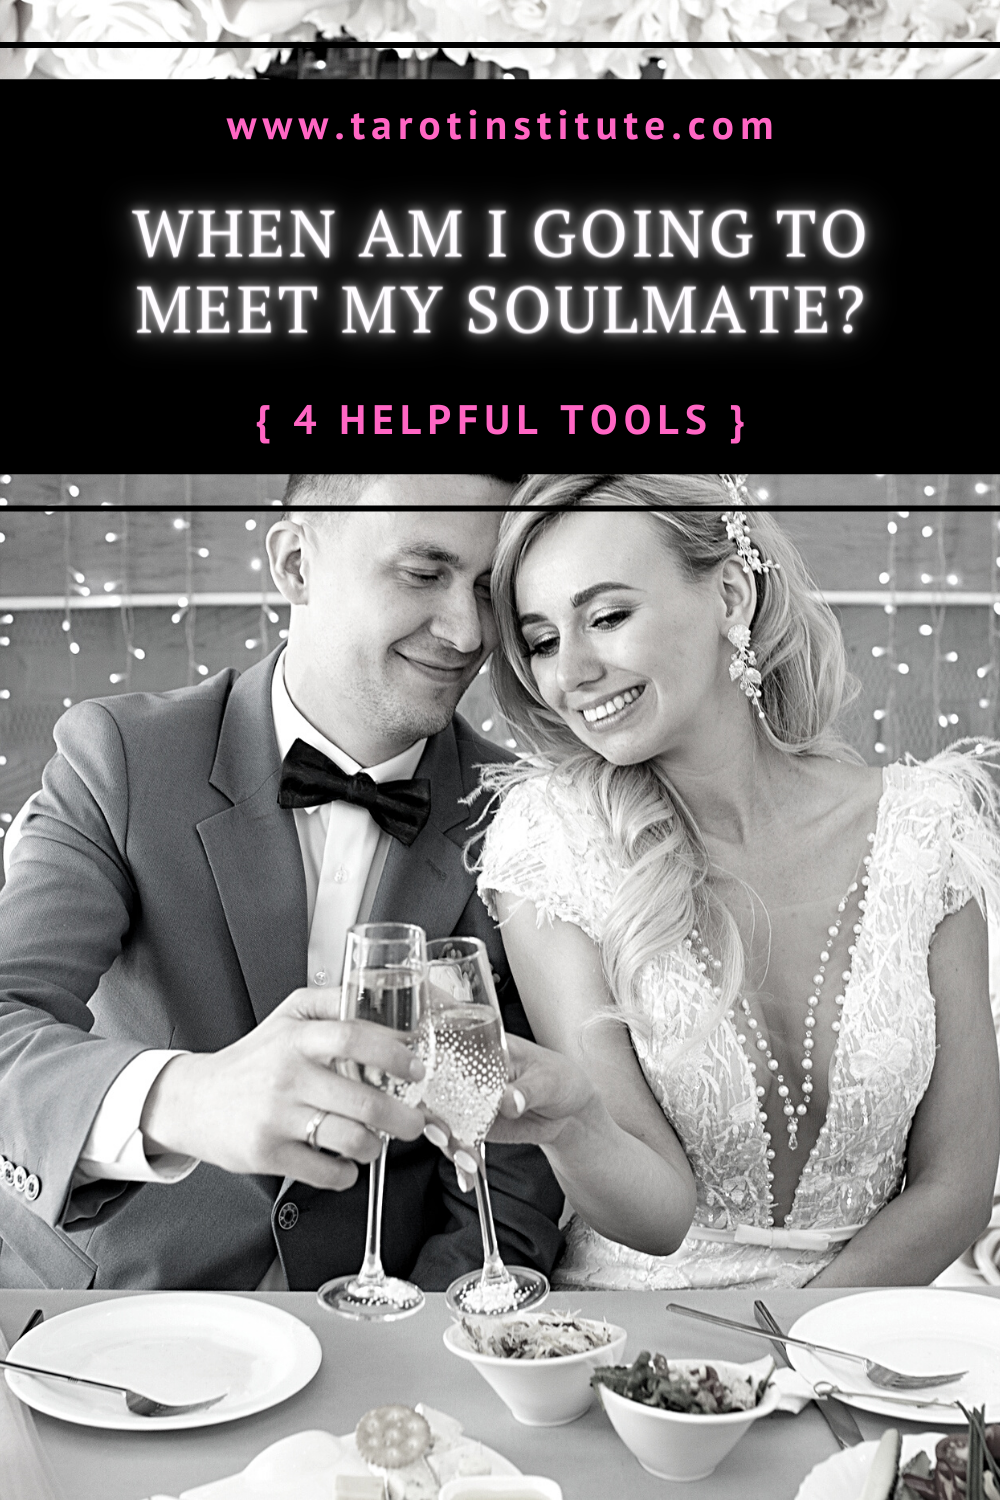 When am I going to meet my soulmate? (4 Helpful Tools